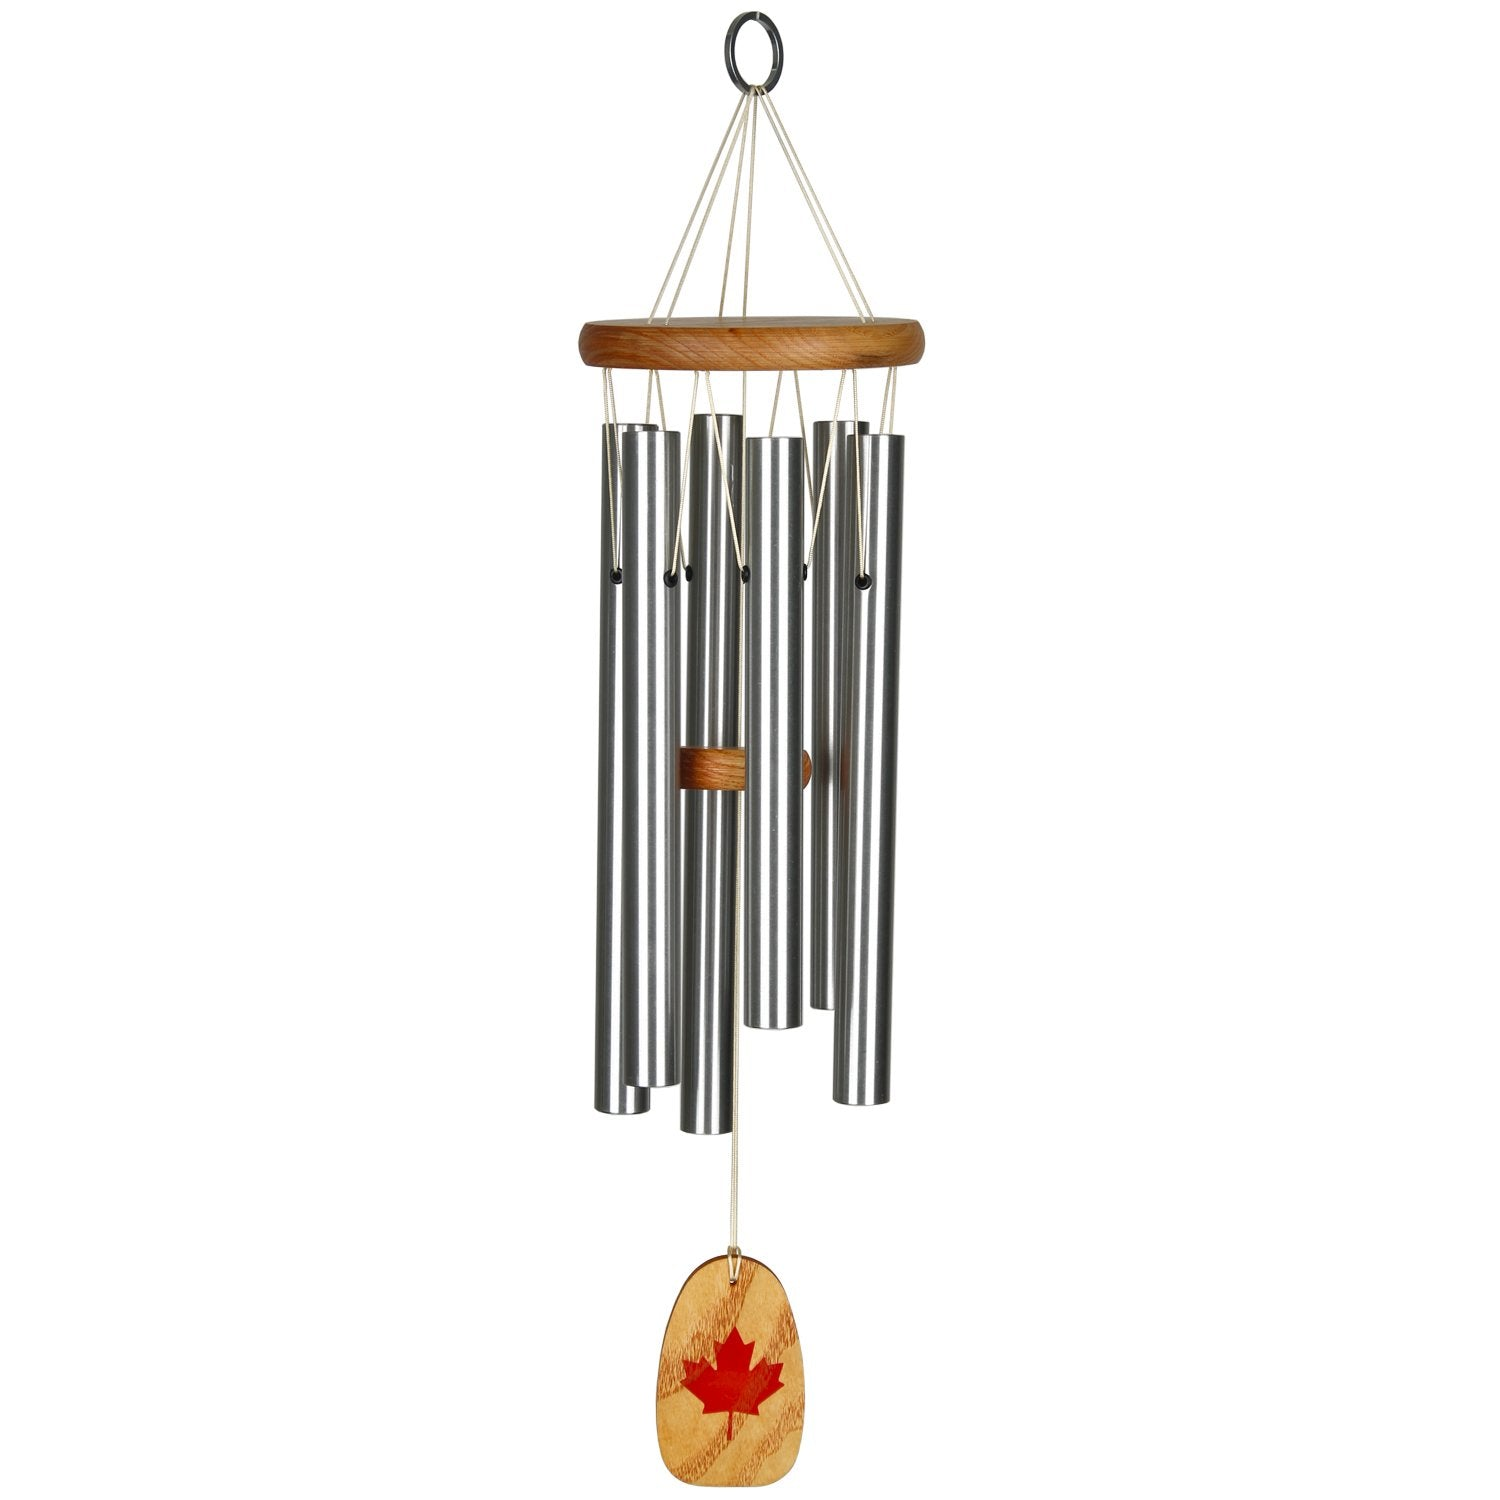 O Canada Chime full product image